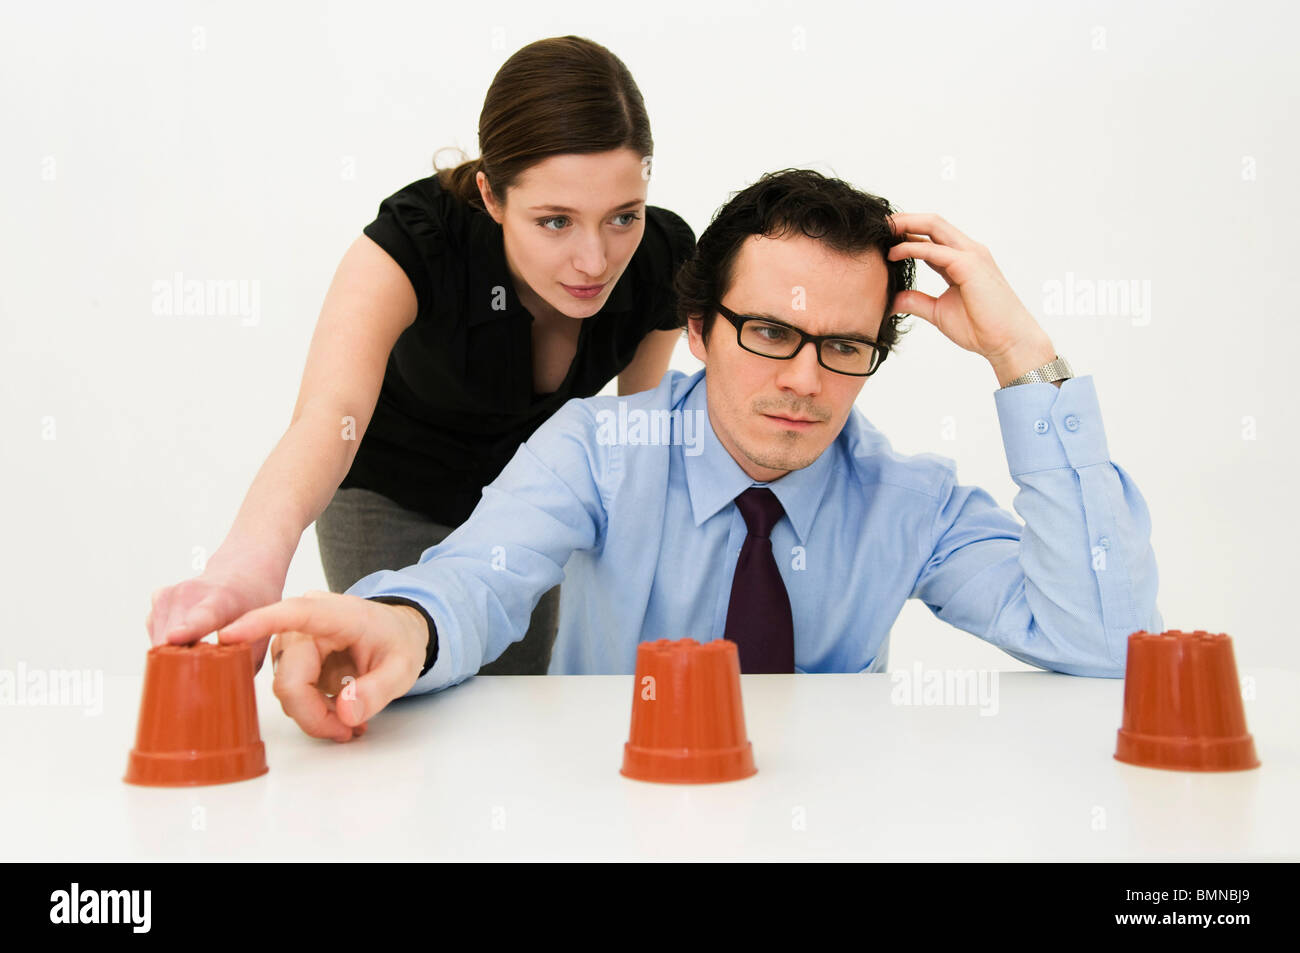 Couple ponder location of hidden item - Stock Image